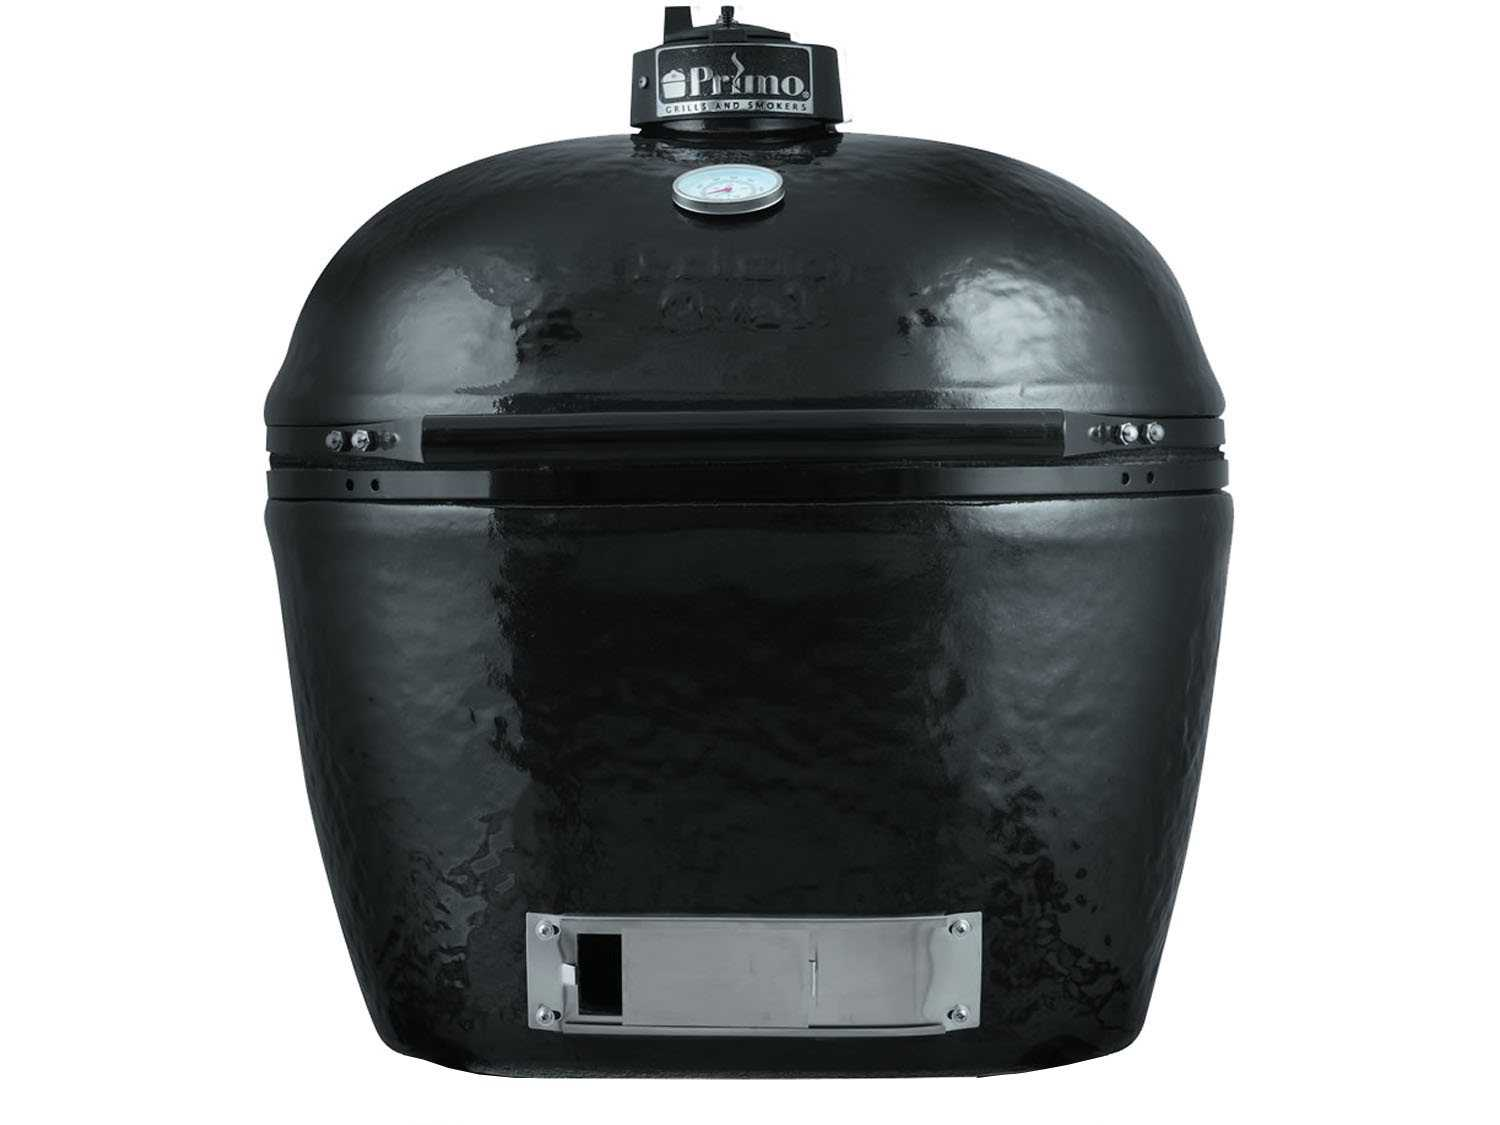 Primo Oval (400) XL Ceramic Smoker Grill In Compact